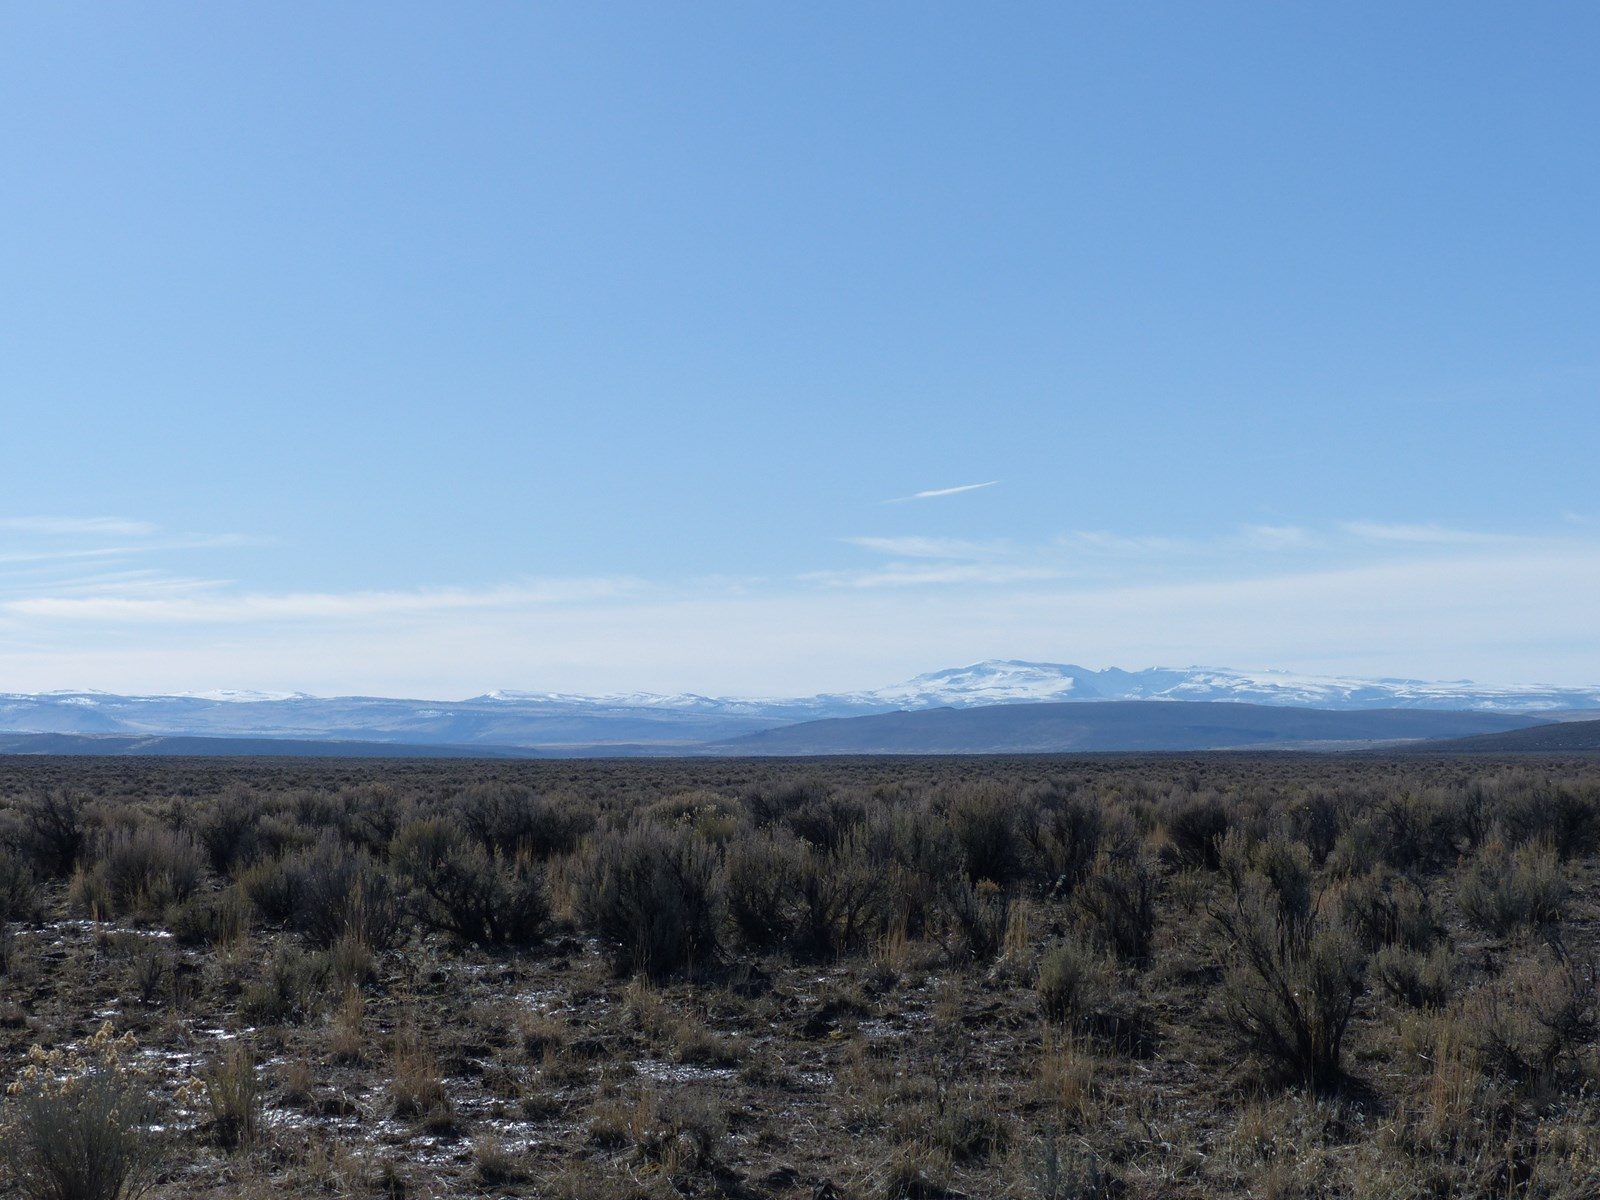 PRINCETON, OR - 158.19 ACRES - CLOSE TO DRY LAKE RESERVOIR